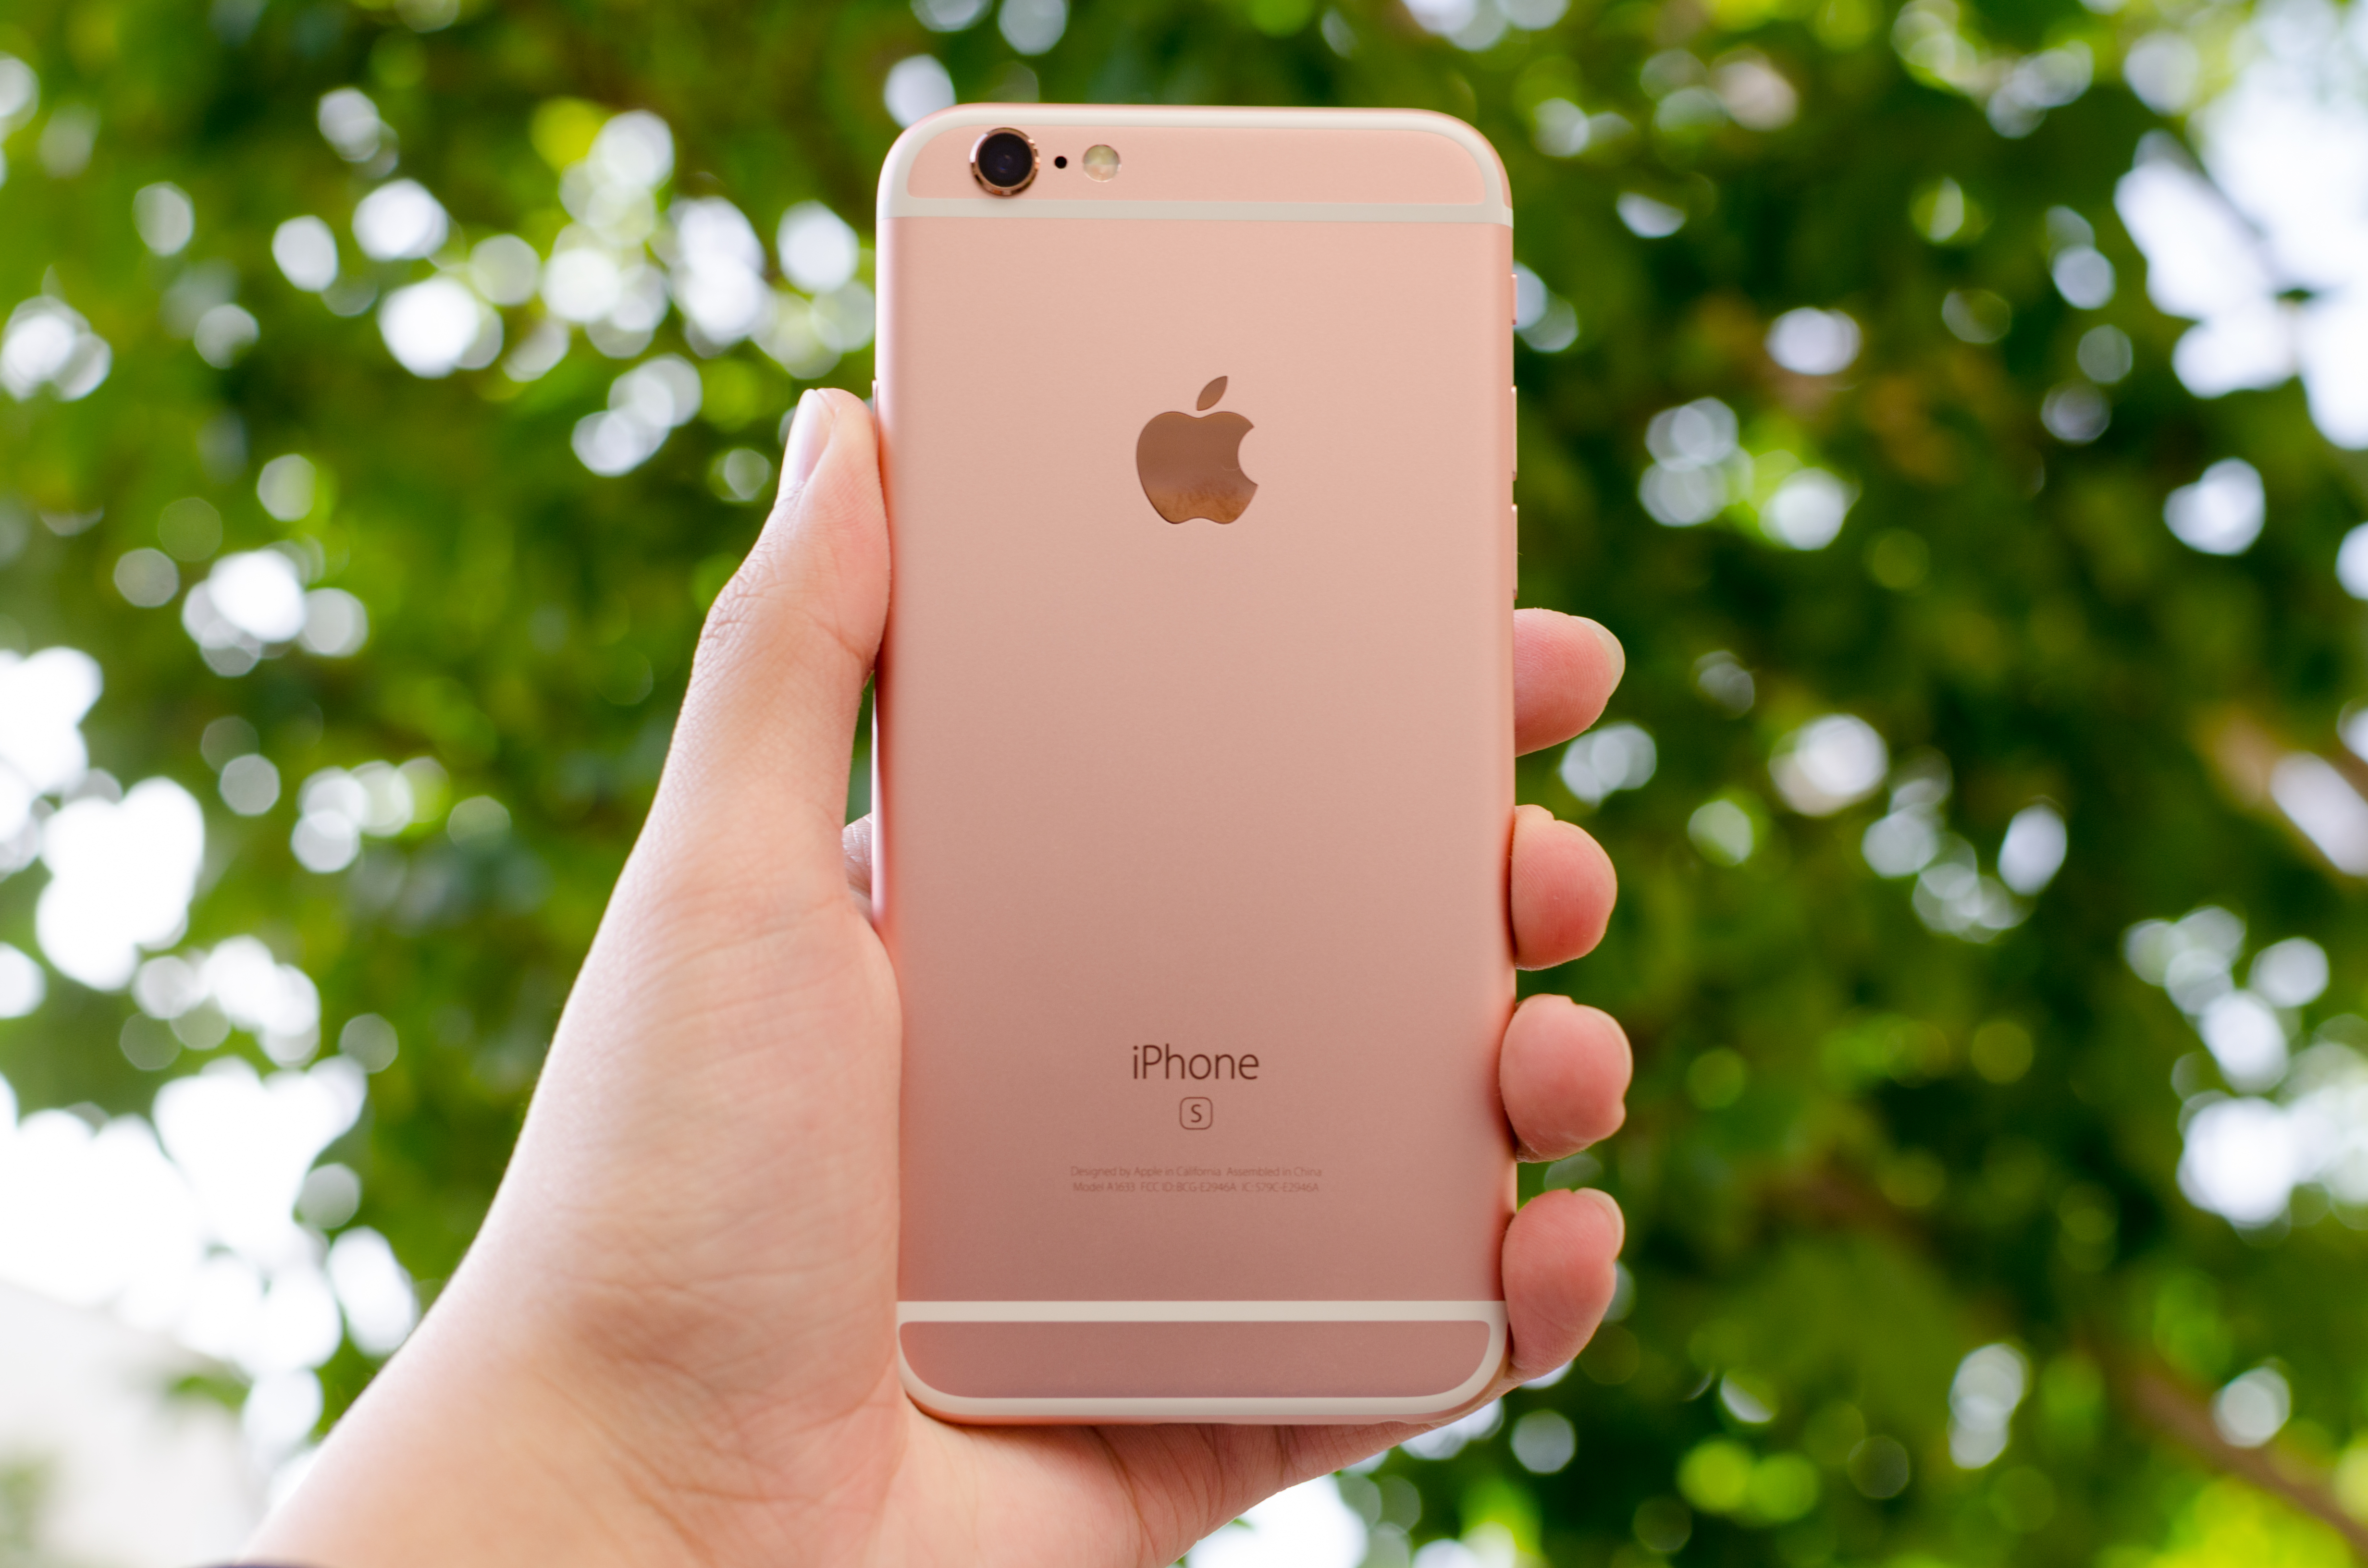 iphone 6s review words the apple iphone 6s and iphone 6s plus review 11498